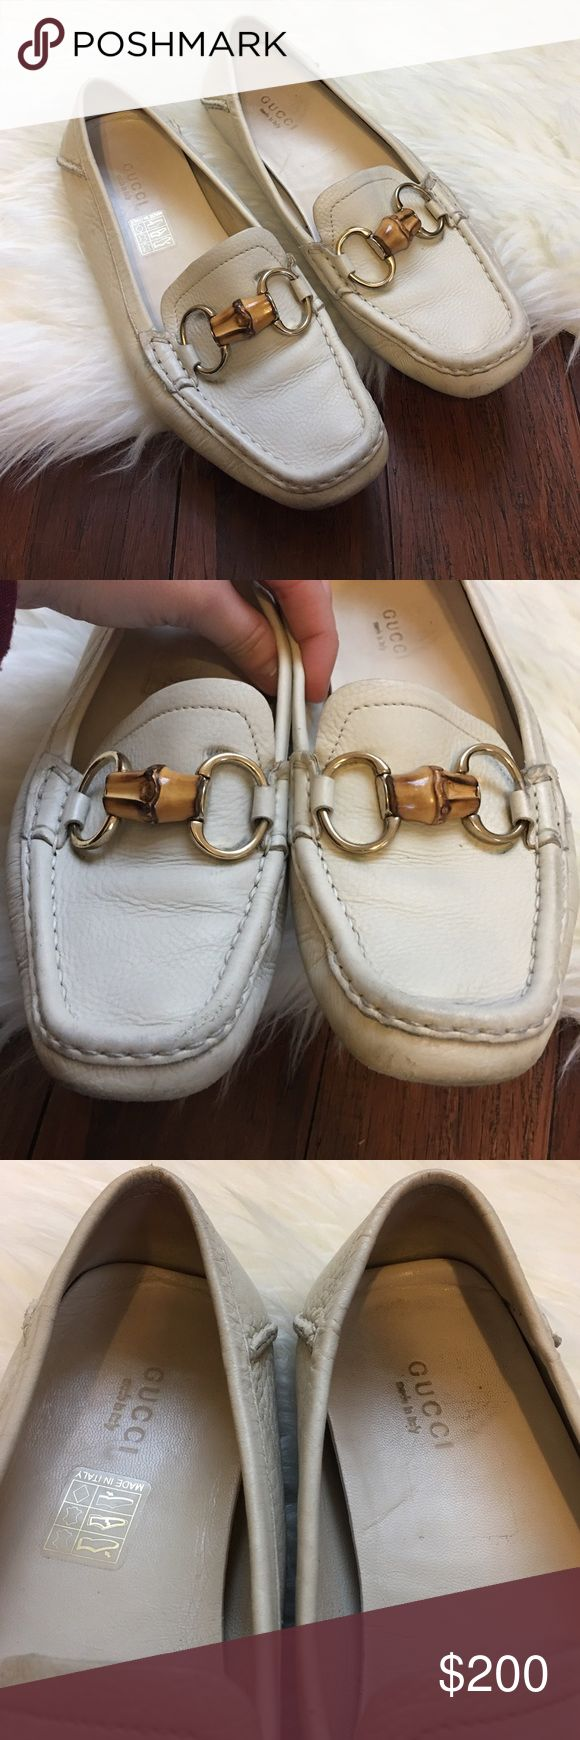 | Gucci | Ivory Bamboo Driver Loafer Moccasins 100% authentic! In excellent used condition. Wear is shown mostly on the bottom. Some wear on the toe area and under the metal. But nothing you can notice when wearing. Extremely comfortable shoe! Buttery soft leather. Made in Italy. Size 36.5. Gucci Shoes Flats & Loafers